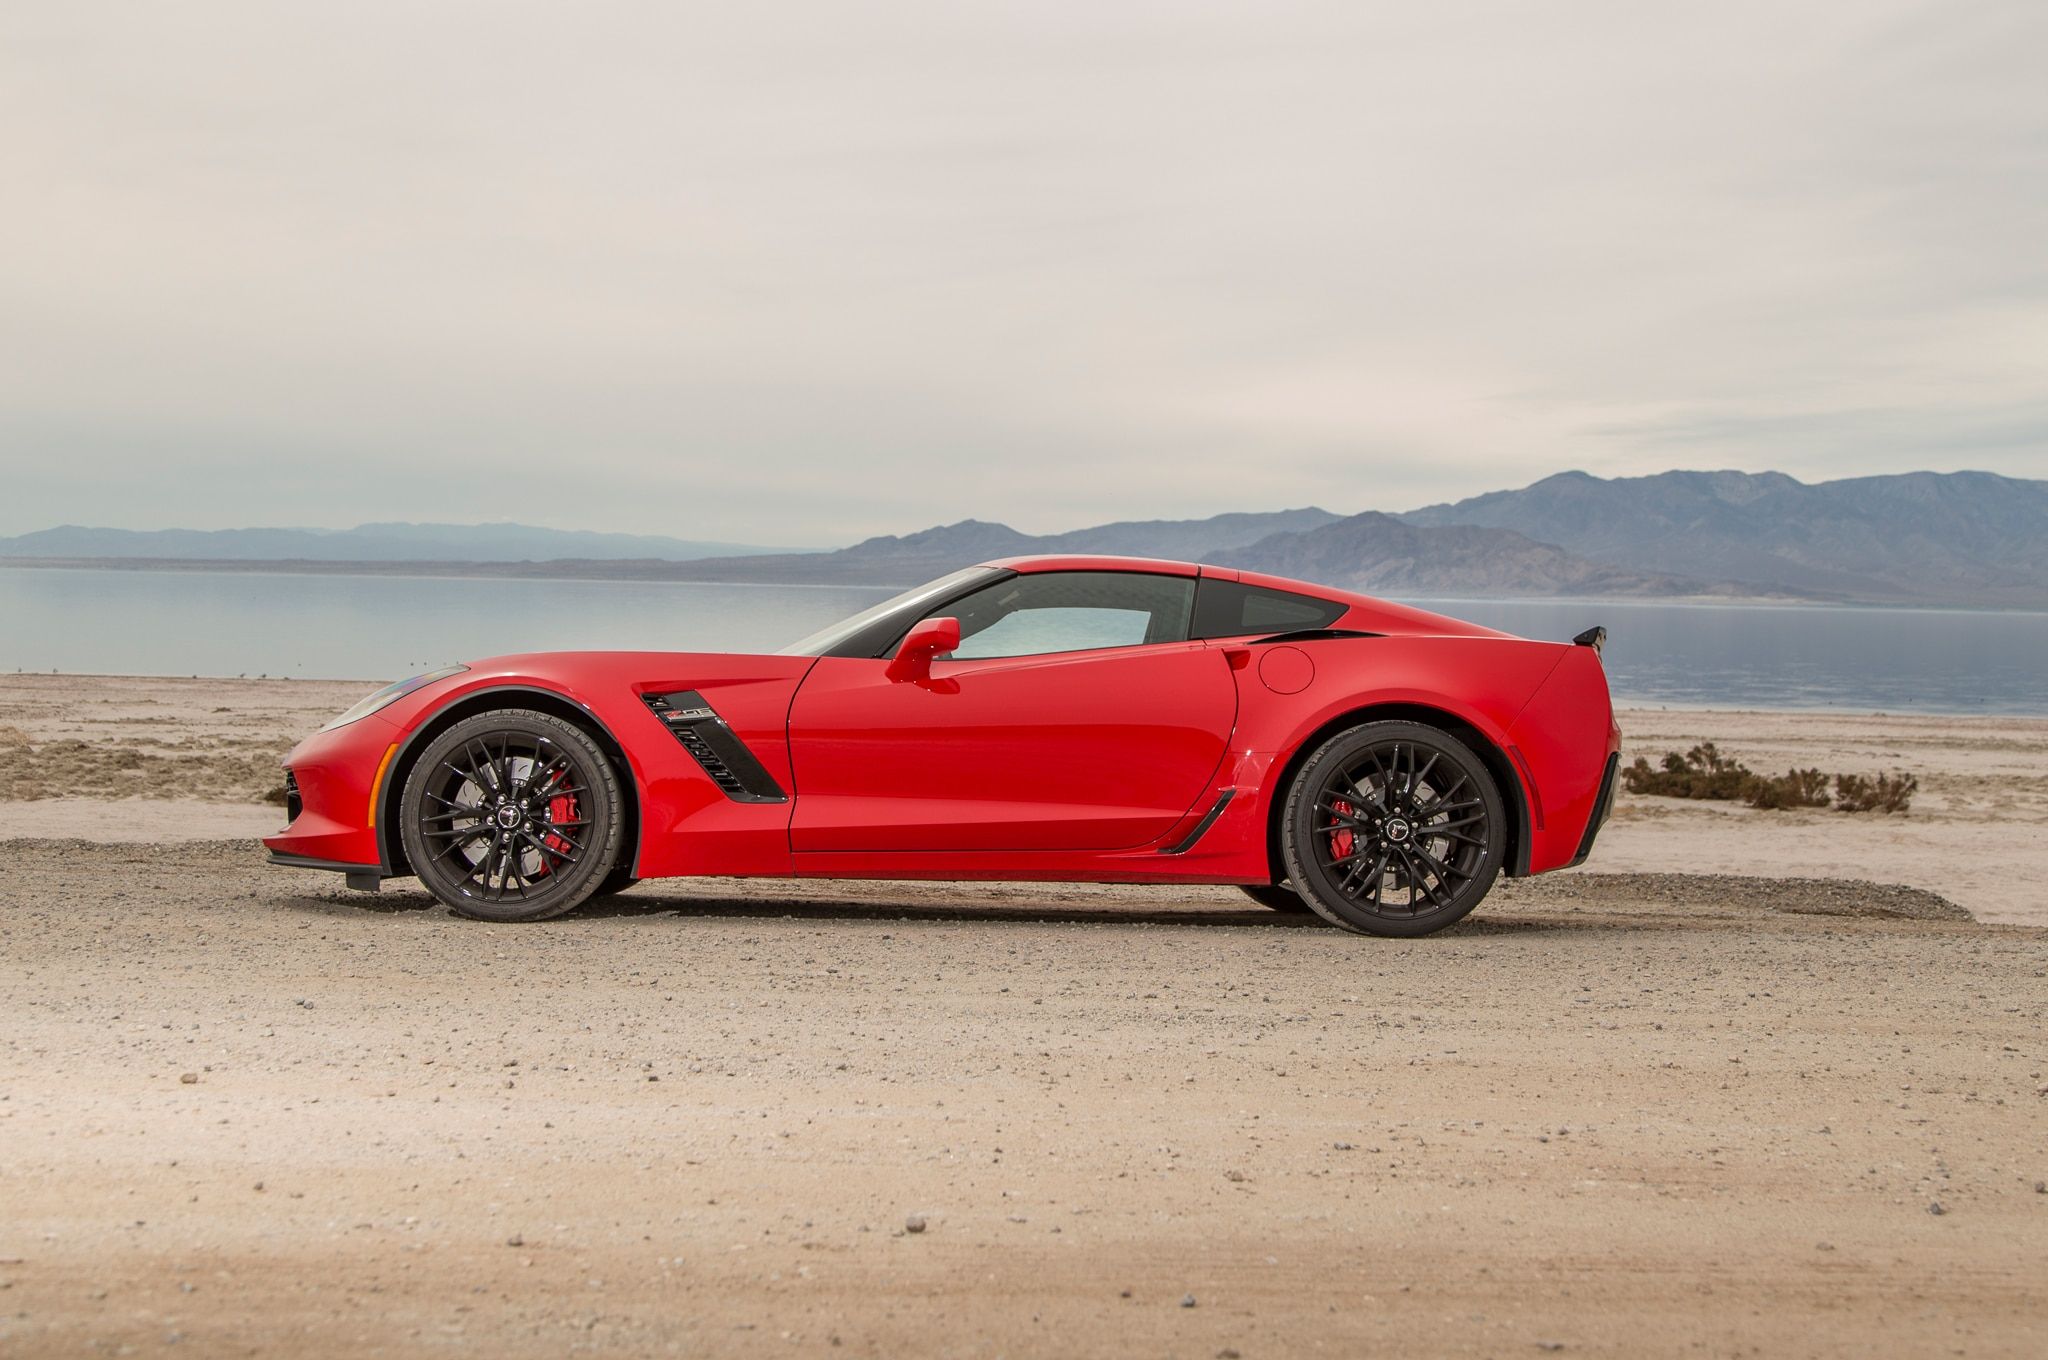 2015-Chevrolet-Corvette-Z06-side-profile Mesmerizing Porsche 911 Turbo Vs Z06 Cars Trend